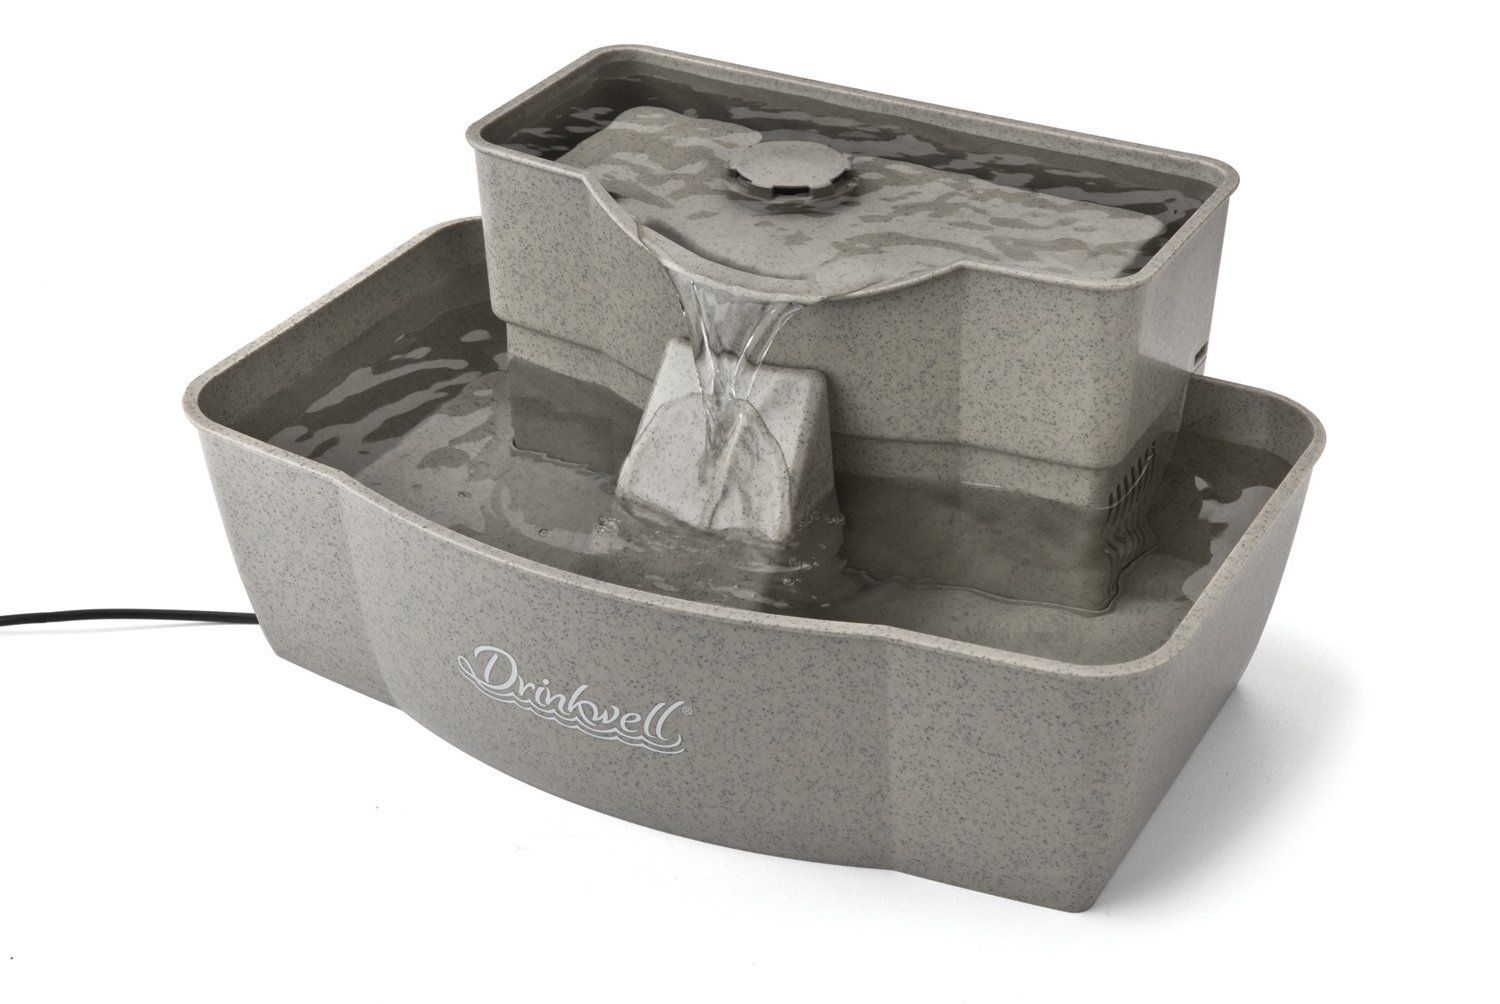 PetSafe Drinkwell Multi-Tier